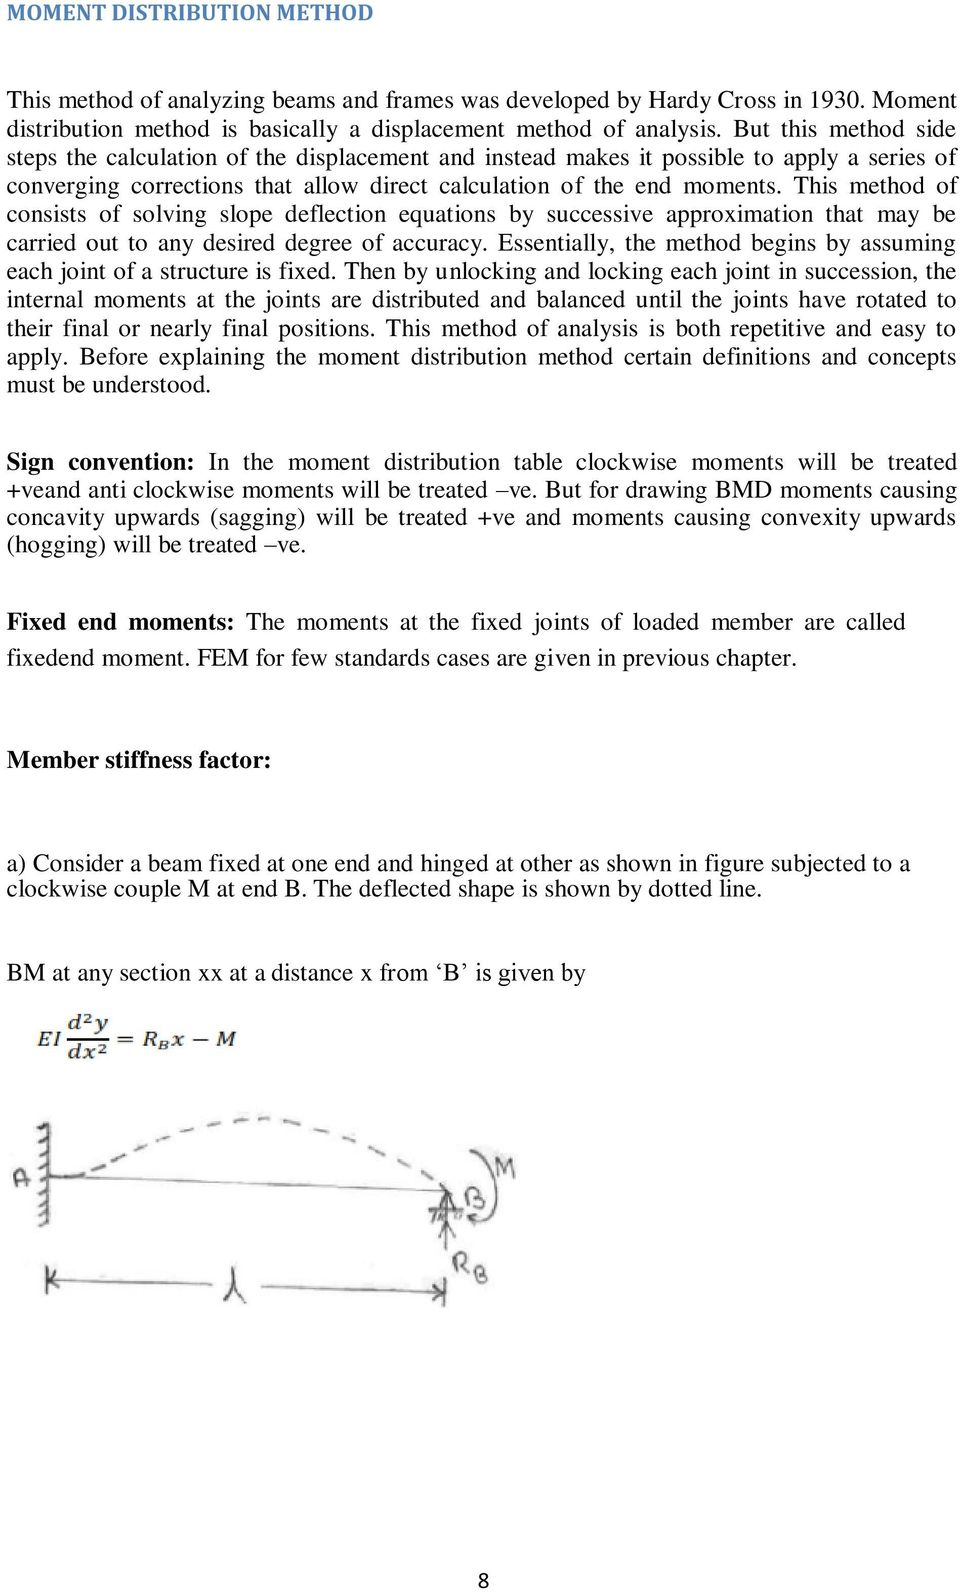 Structural Analysis Ii A60131 Pdf Frame Shown By The Slope Deflection Method Draw Bending Moment Diagram This Of Consists Solving Equations Successive Approximation That May Be Carried